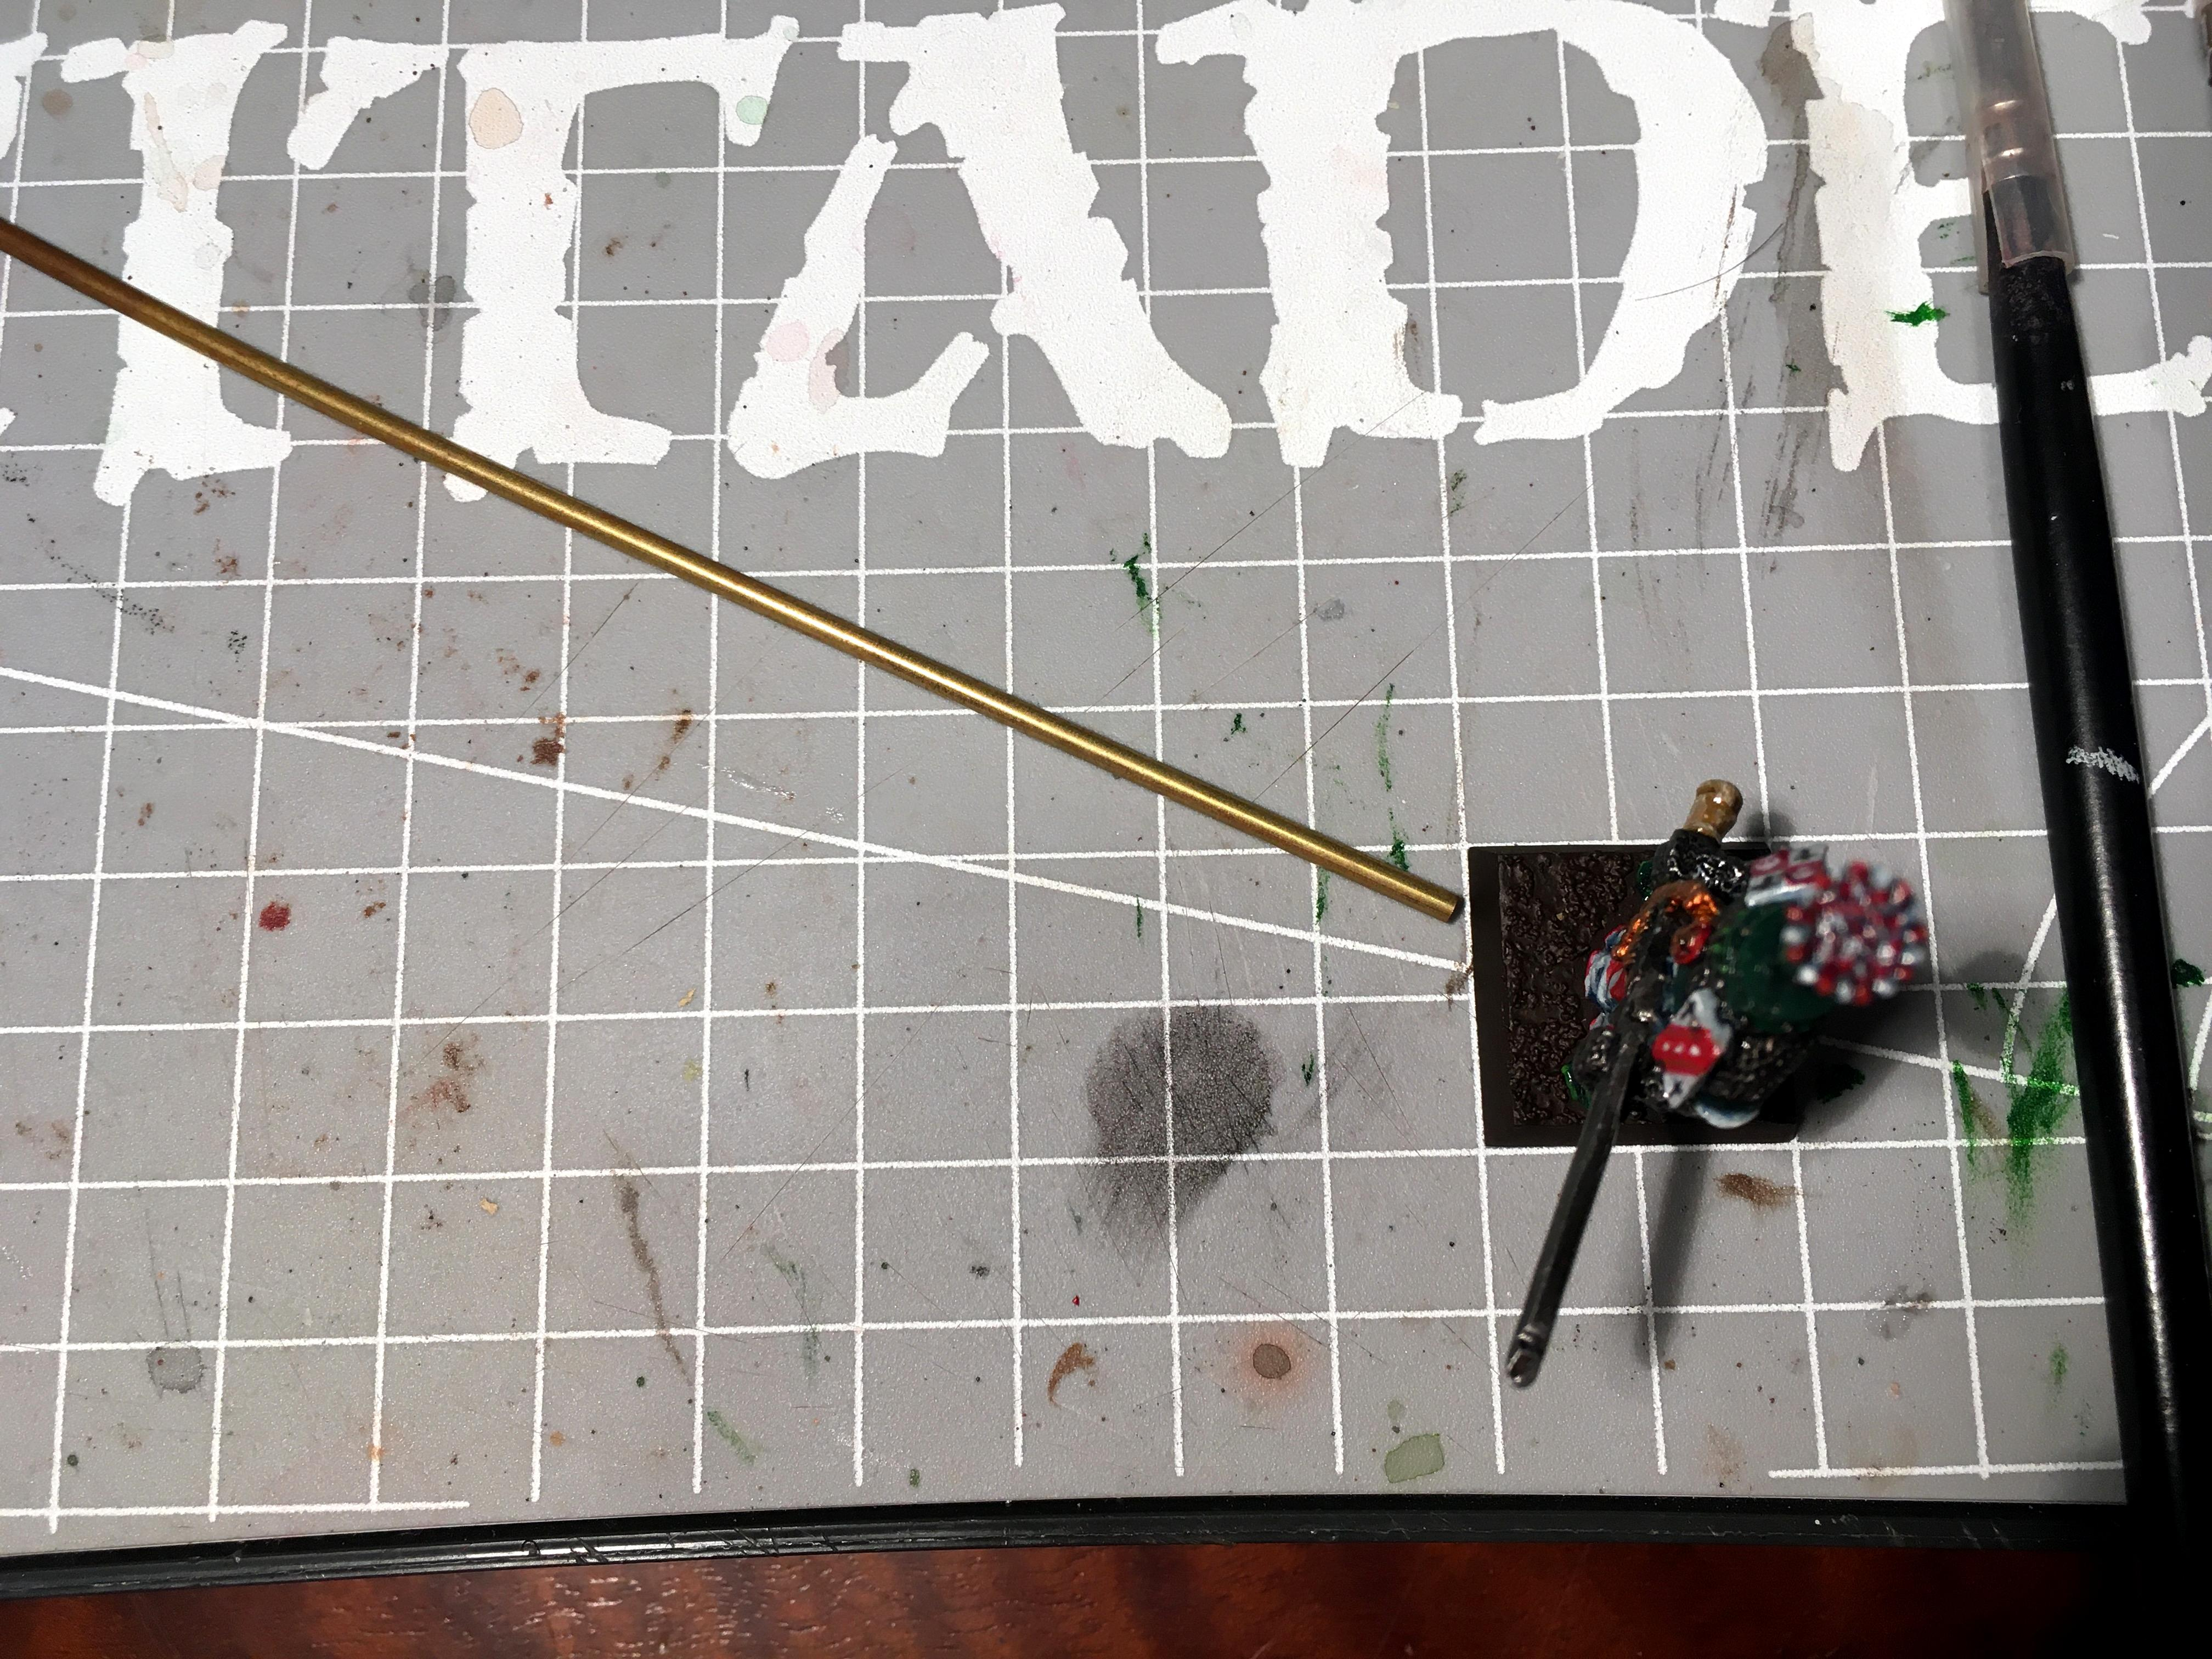 Basing angles, too large